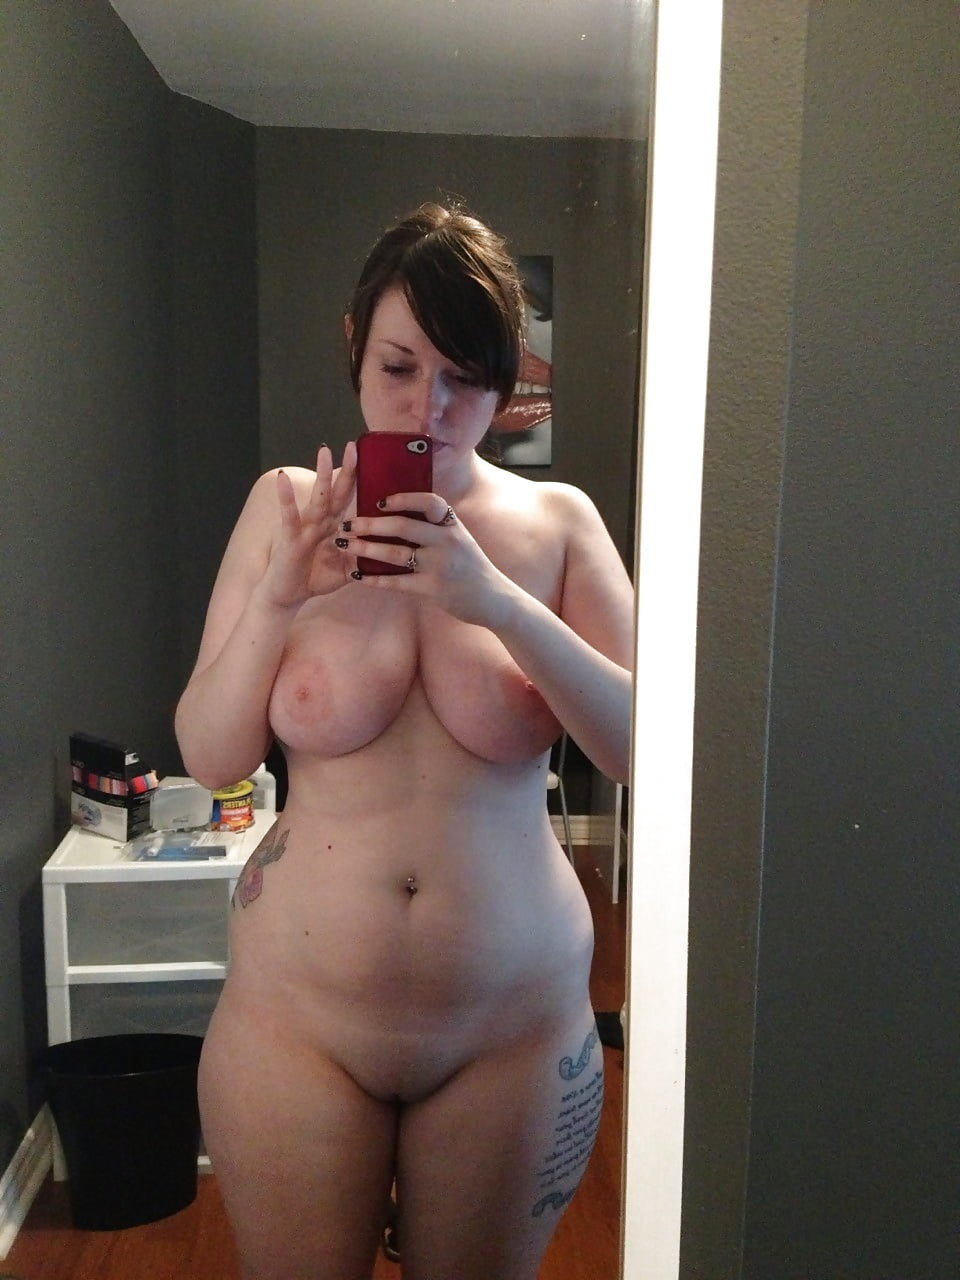 plump-nude-girl-self-picture-hardcore-mature-sex-tubes